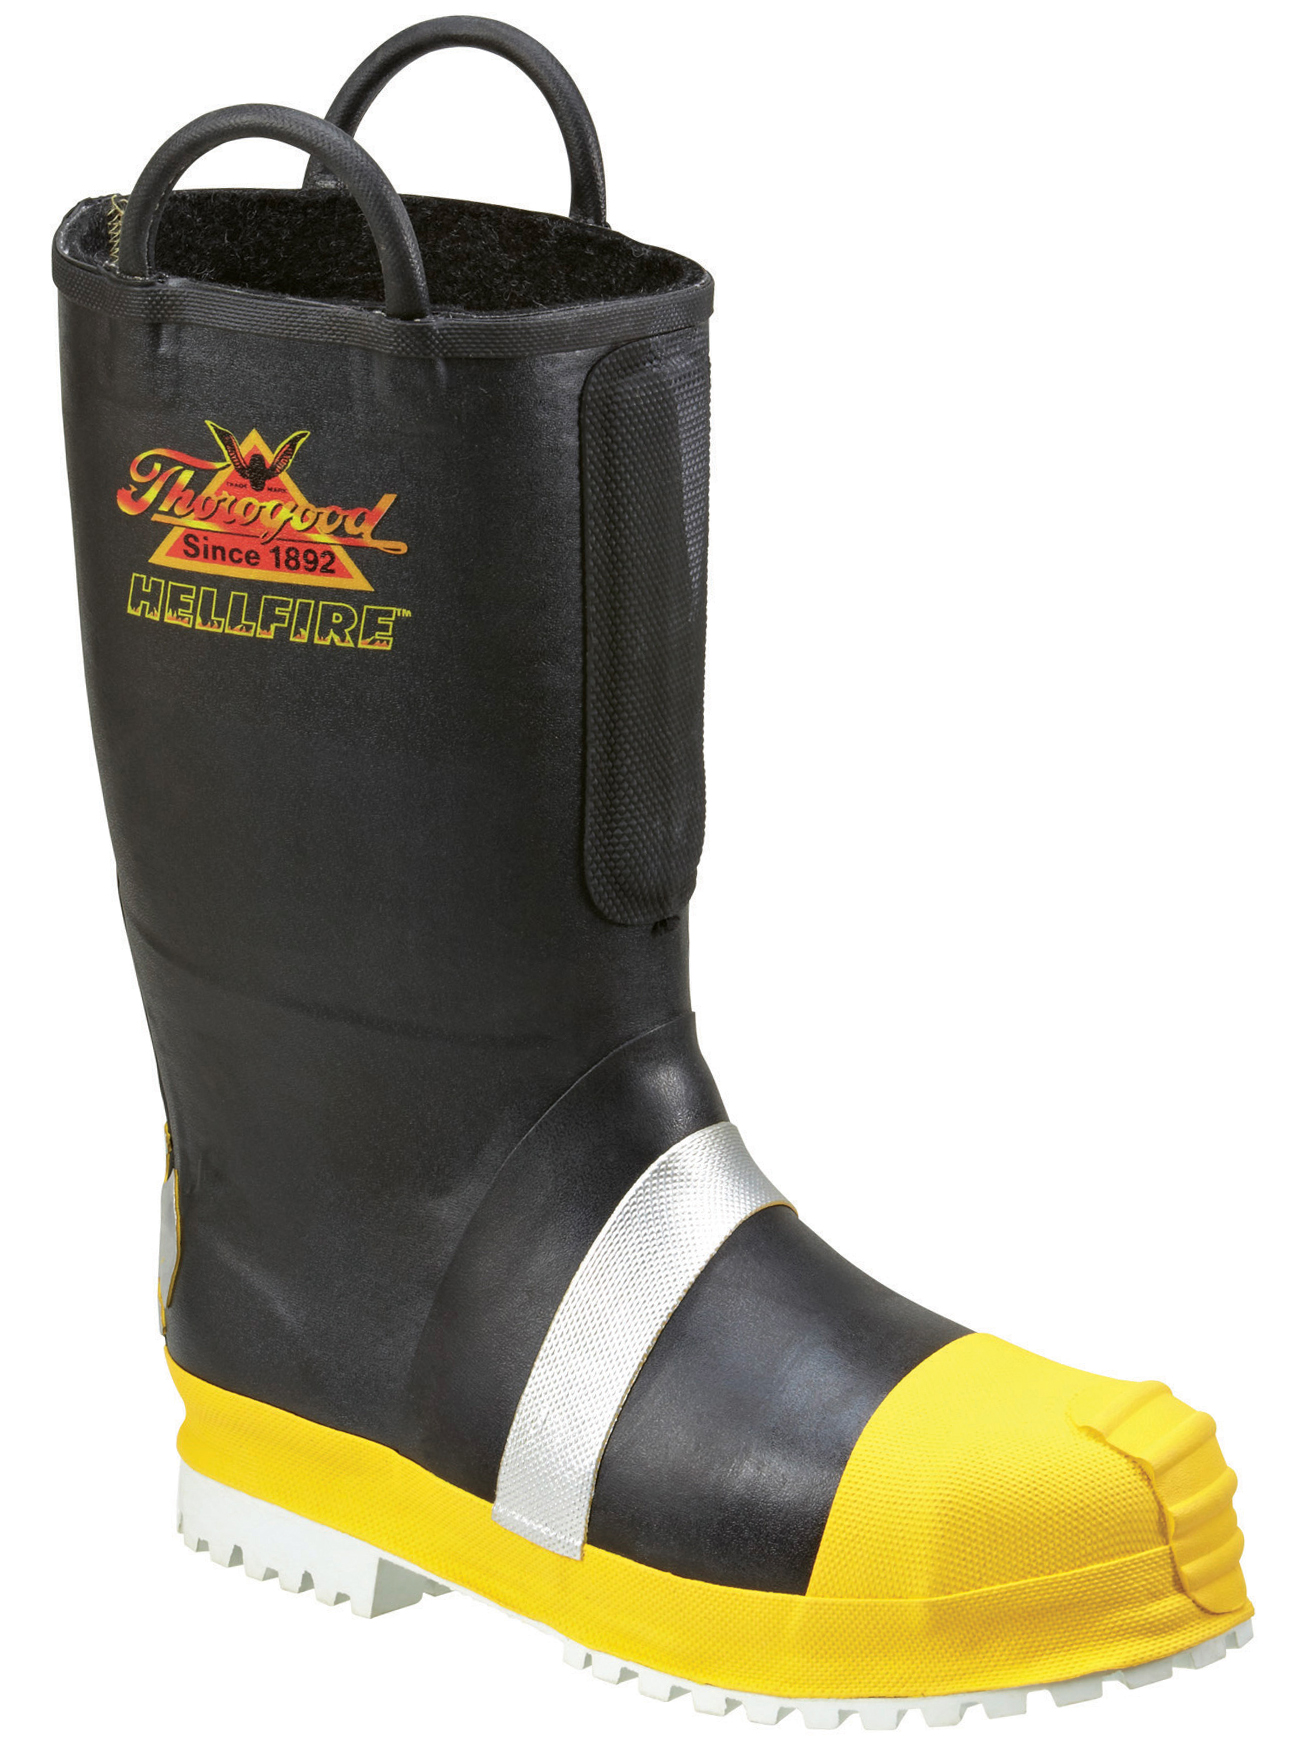 Thorogood Men's Thorogood Fire Boots Flame Heat Resistant Rubber Insulated Medium (D, M) Safety Toe 807-6003 at Sears.com